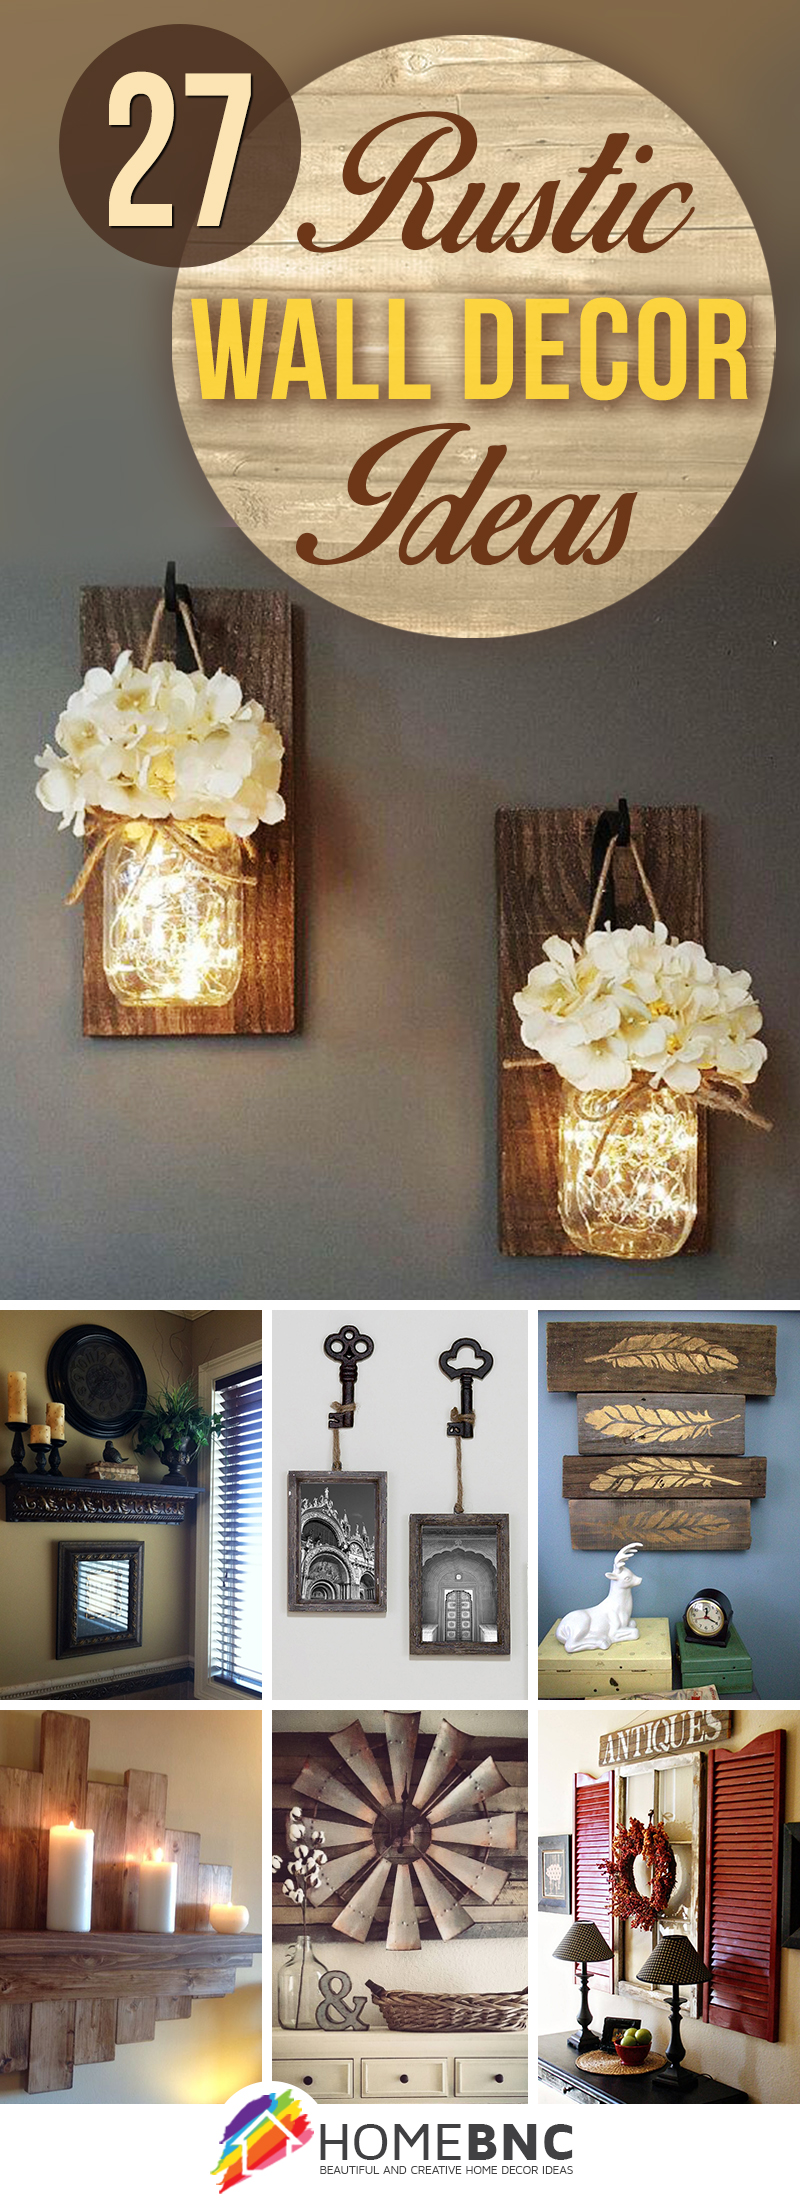 Add Charm And Character With These 27 Rustic Wall Decorations